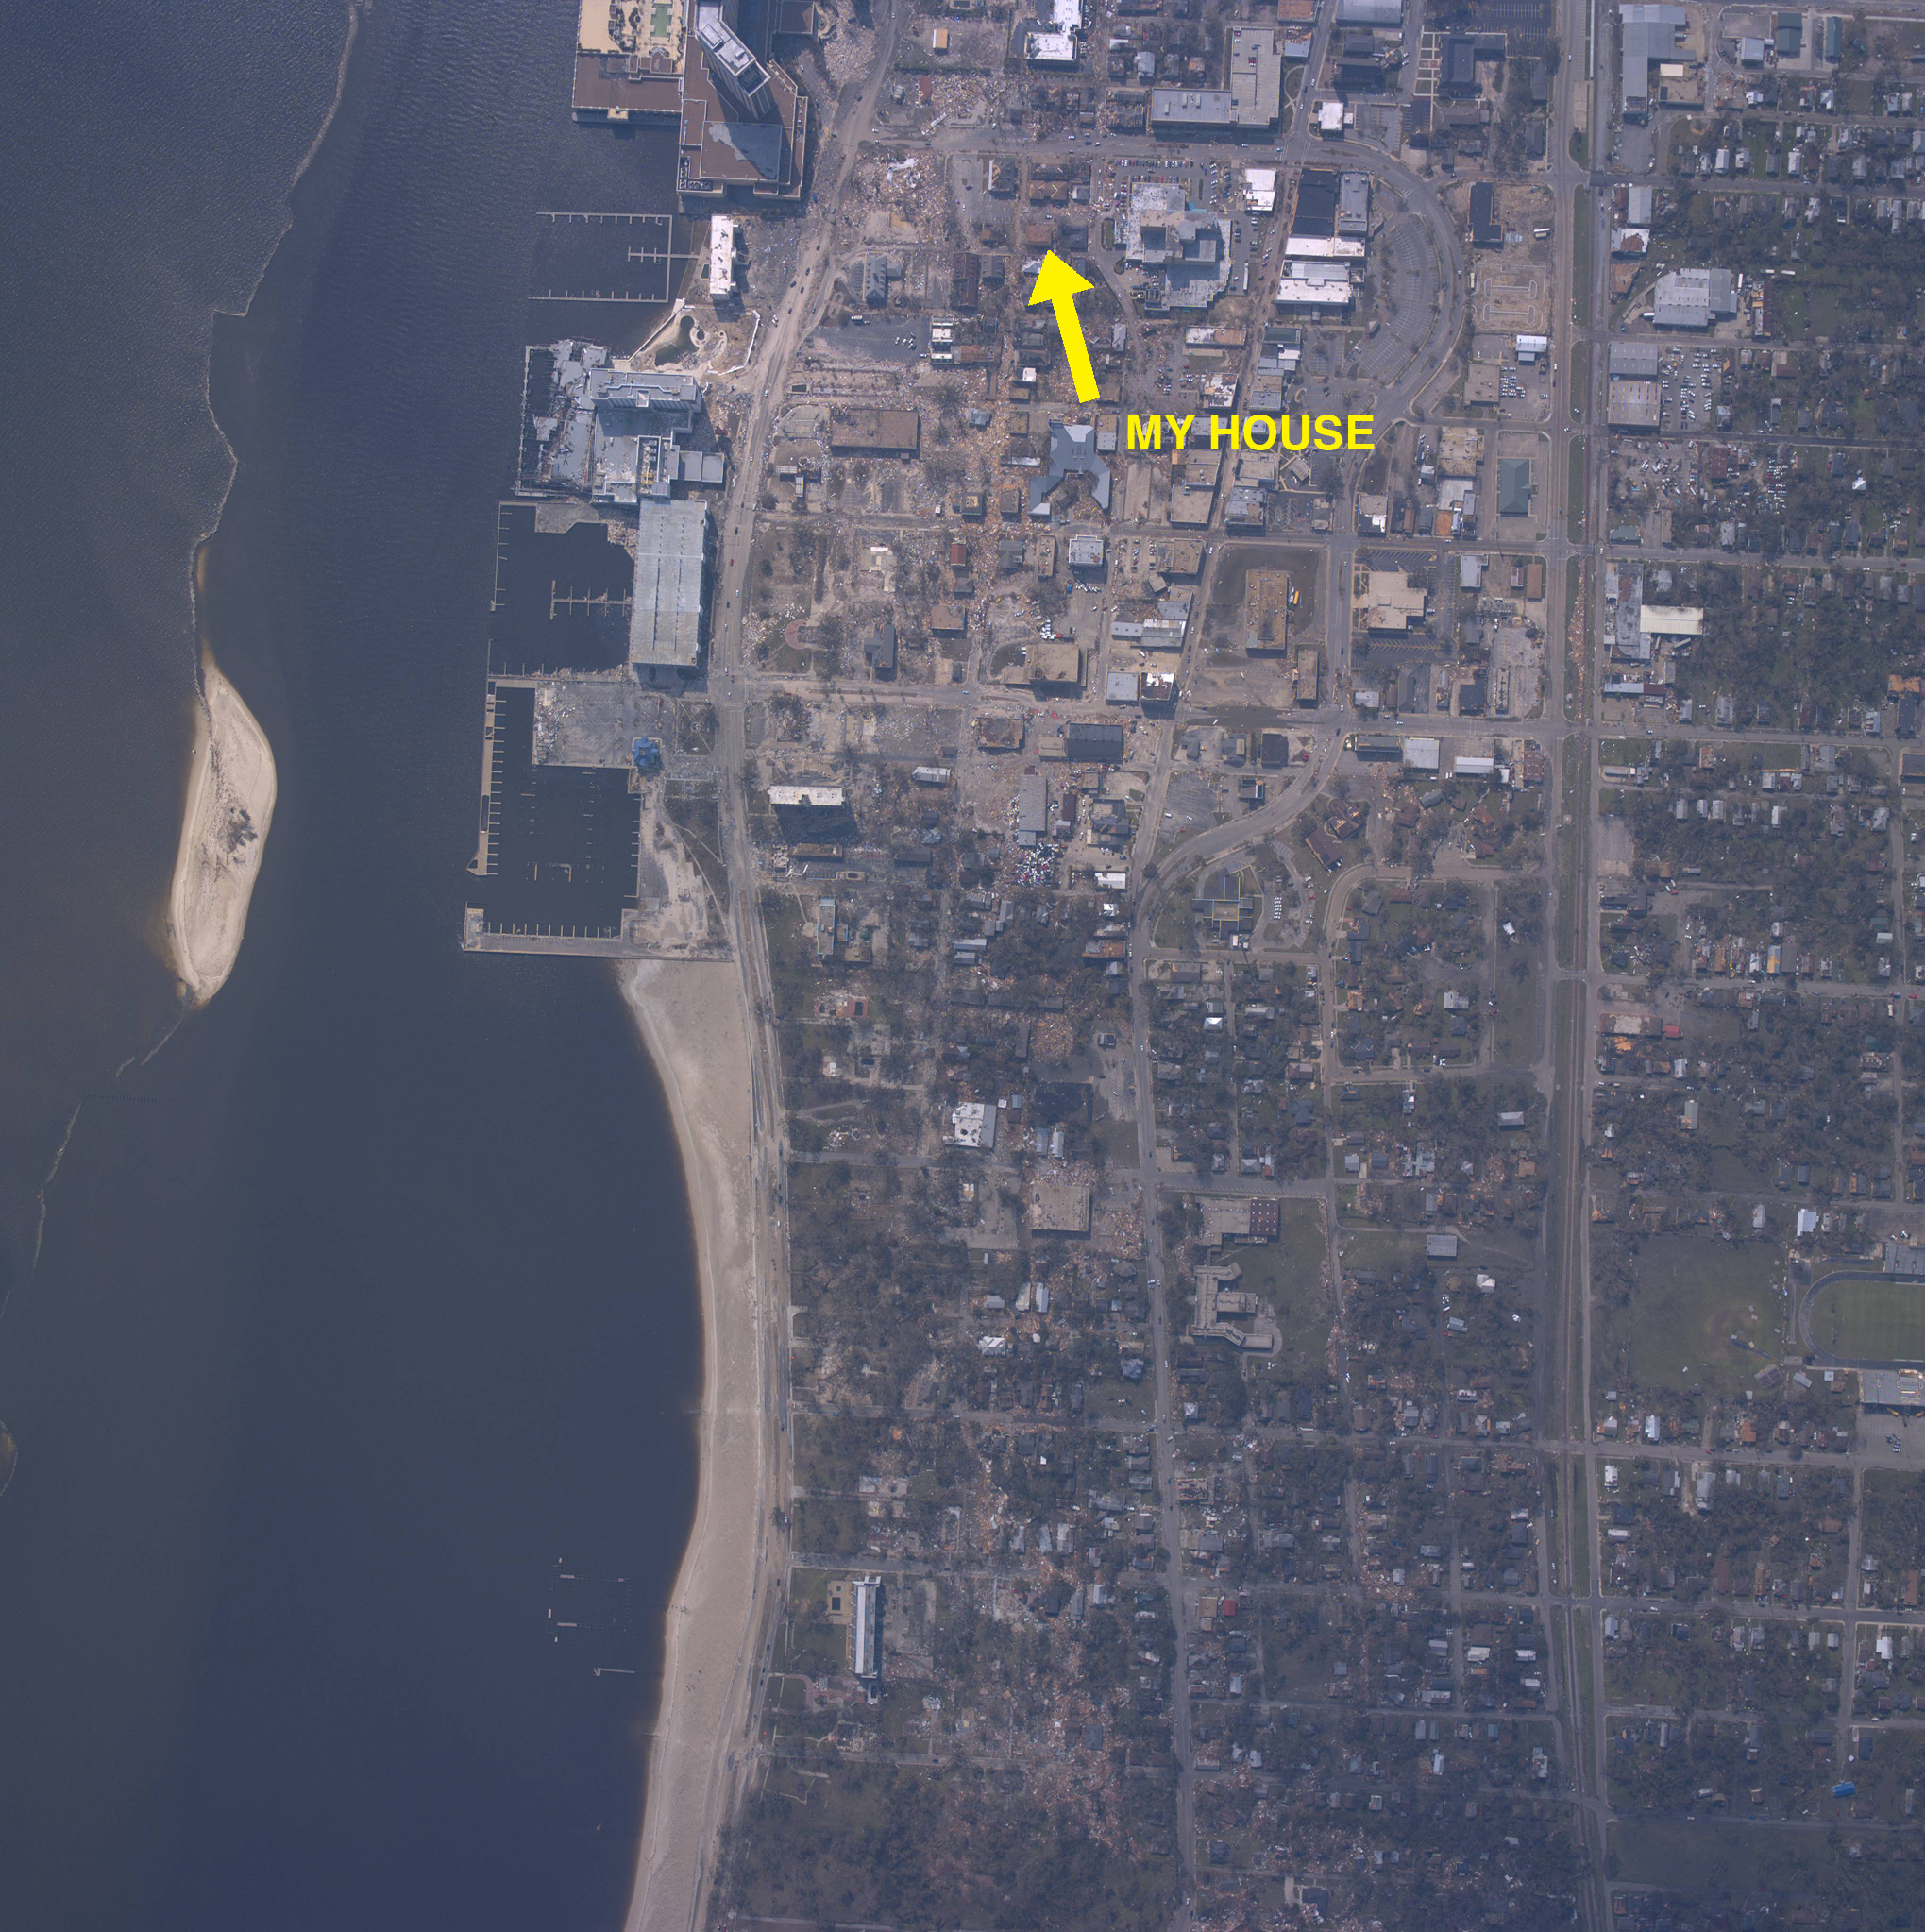 Satellite view of Biloxi taken immediately after Katrina showing the location of my apartment.